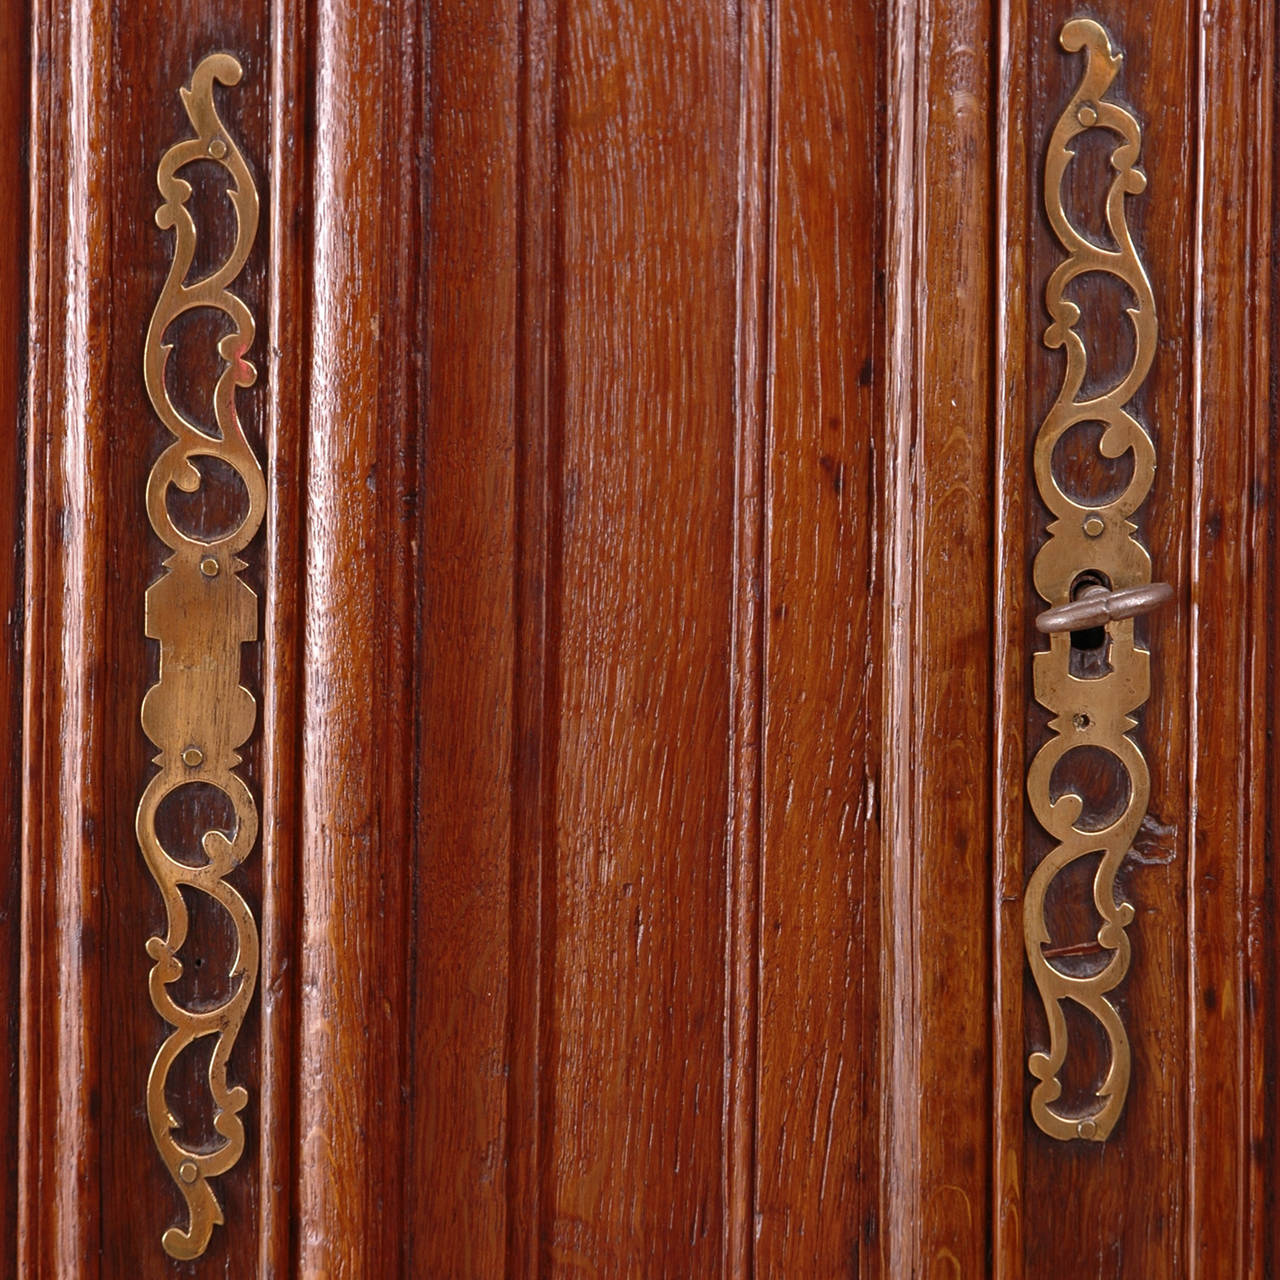 18th Century Louis XV Buffet a Deux Corps in Carved Oak from Normandy For Sale 2